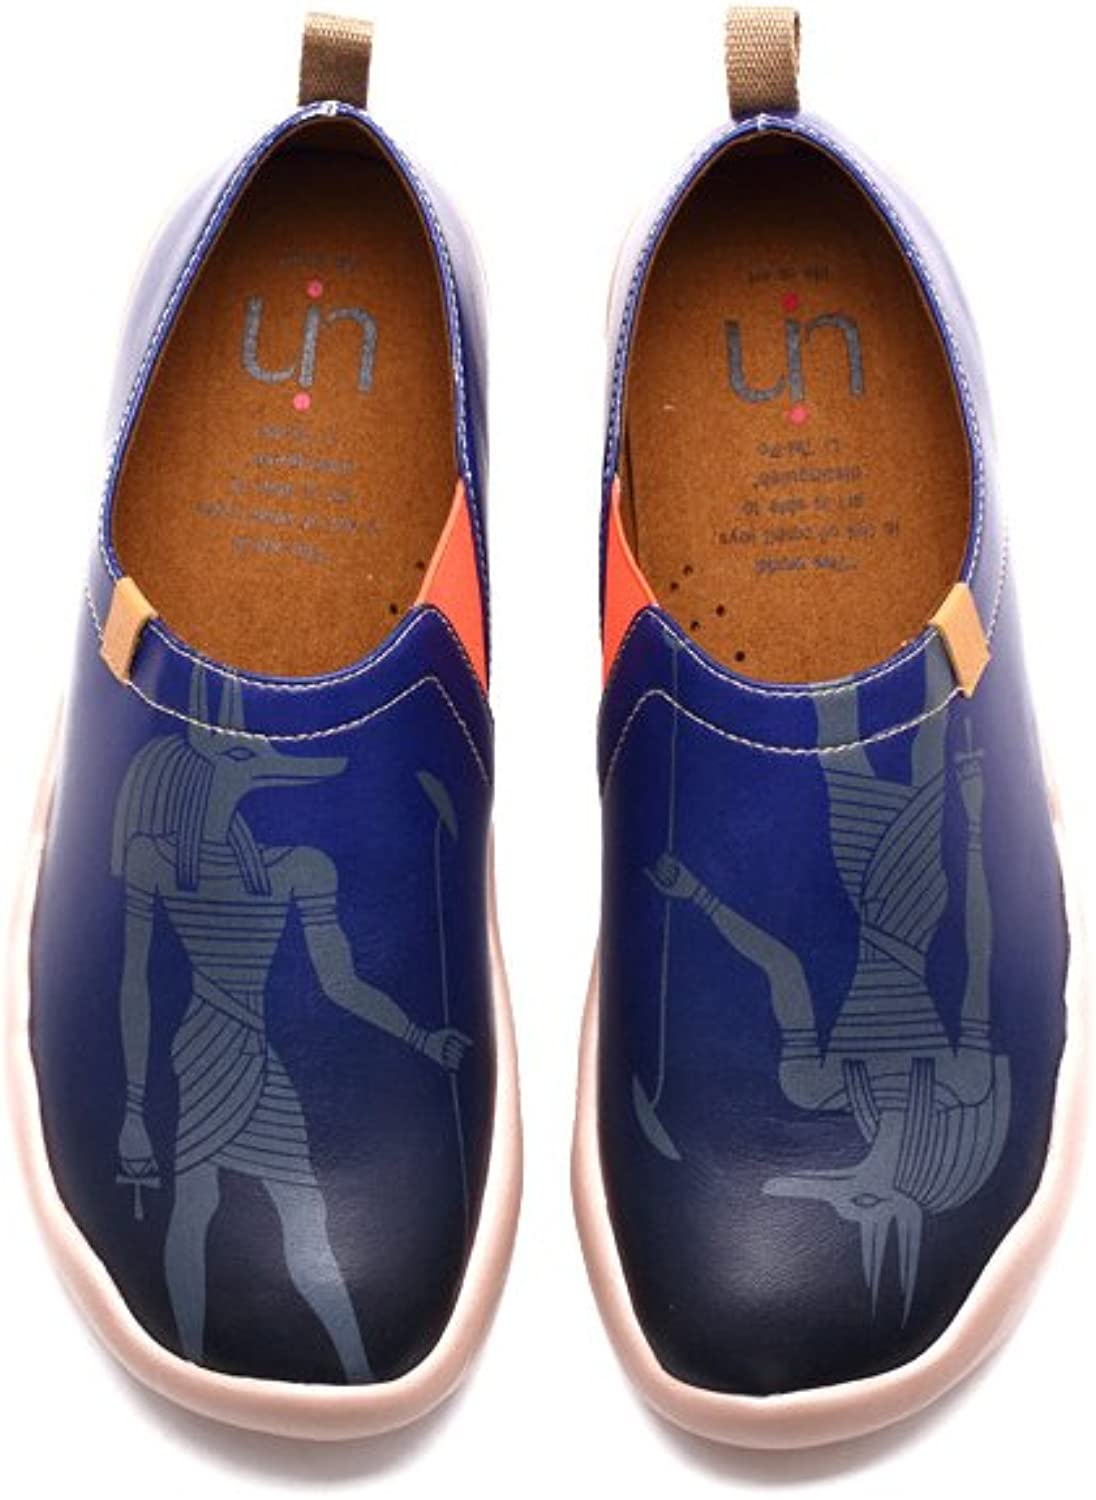 UIN Men's Anubis Painted Leather Loafer shoes bluee